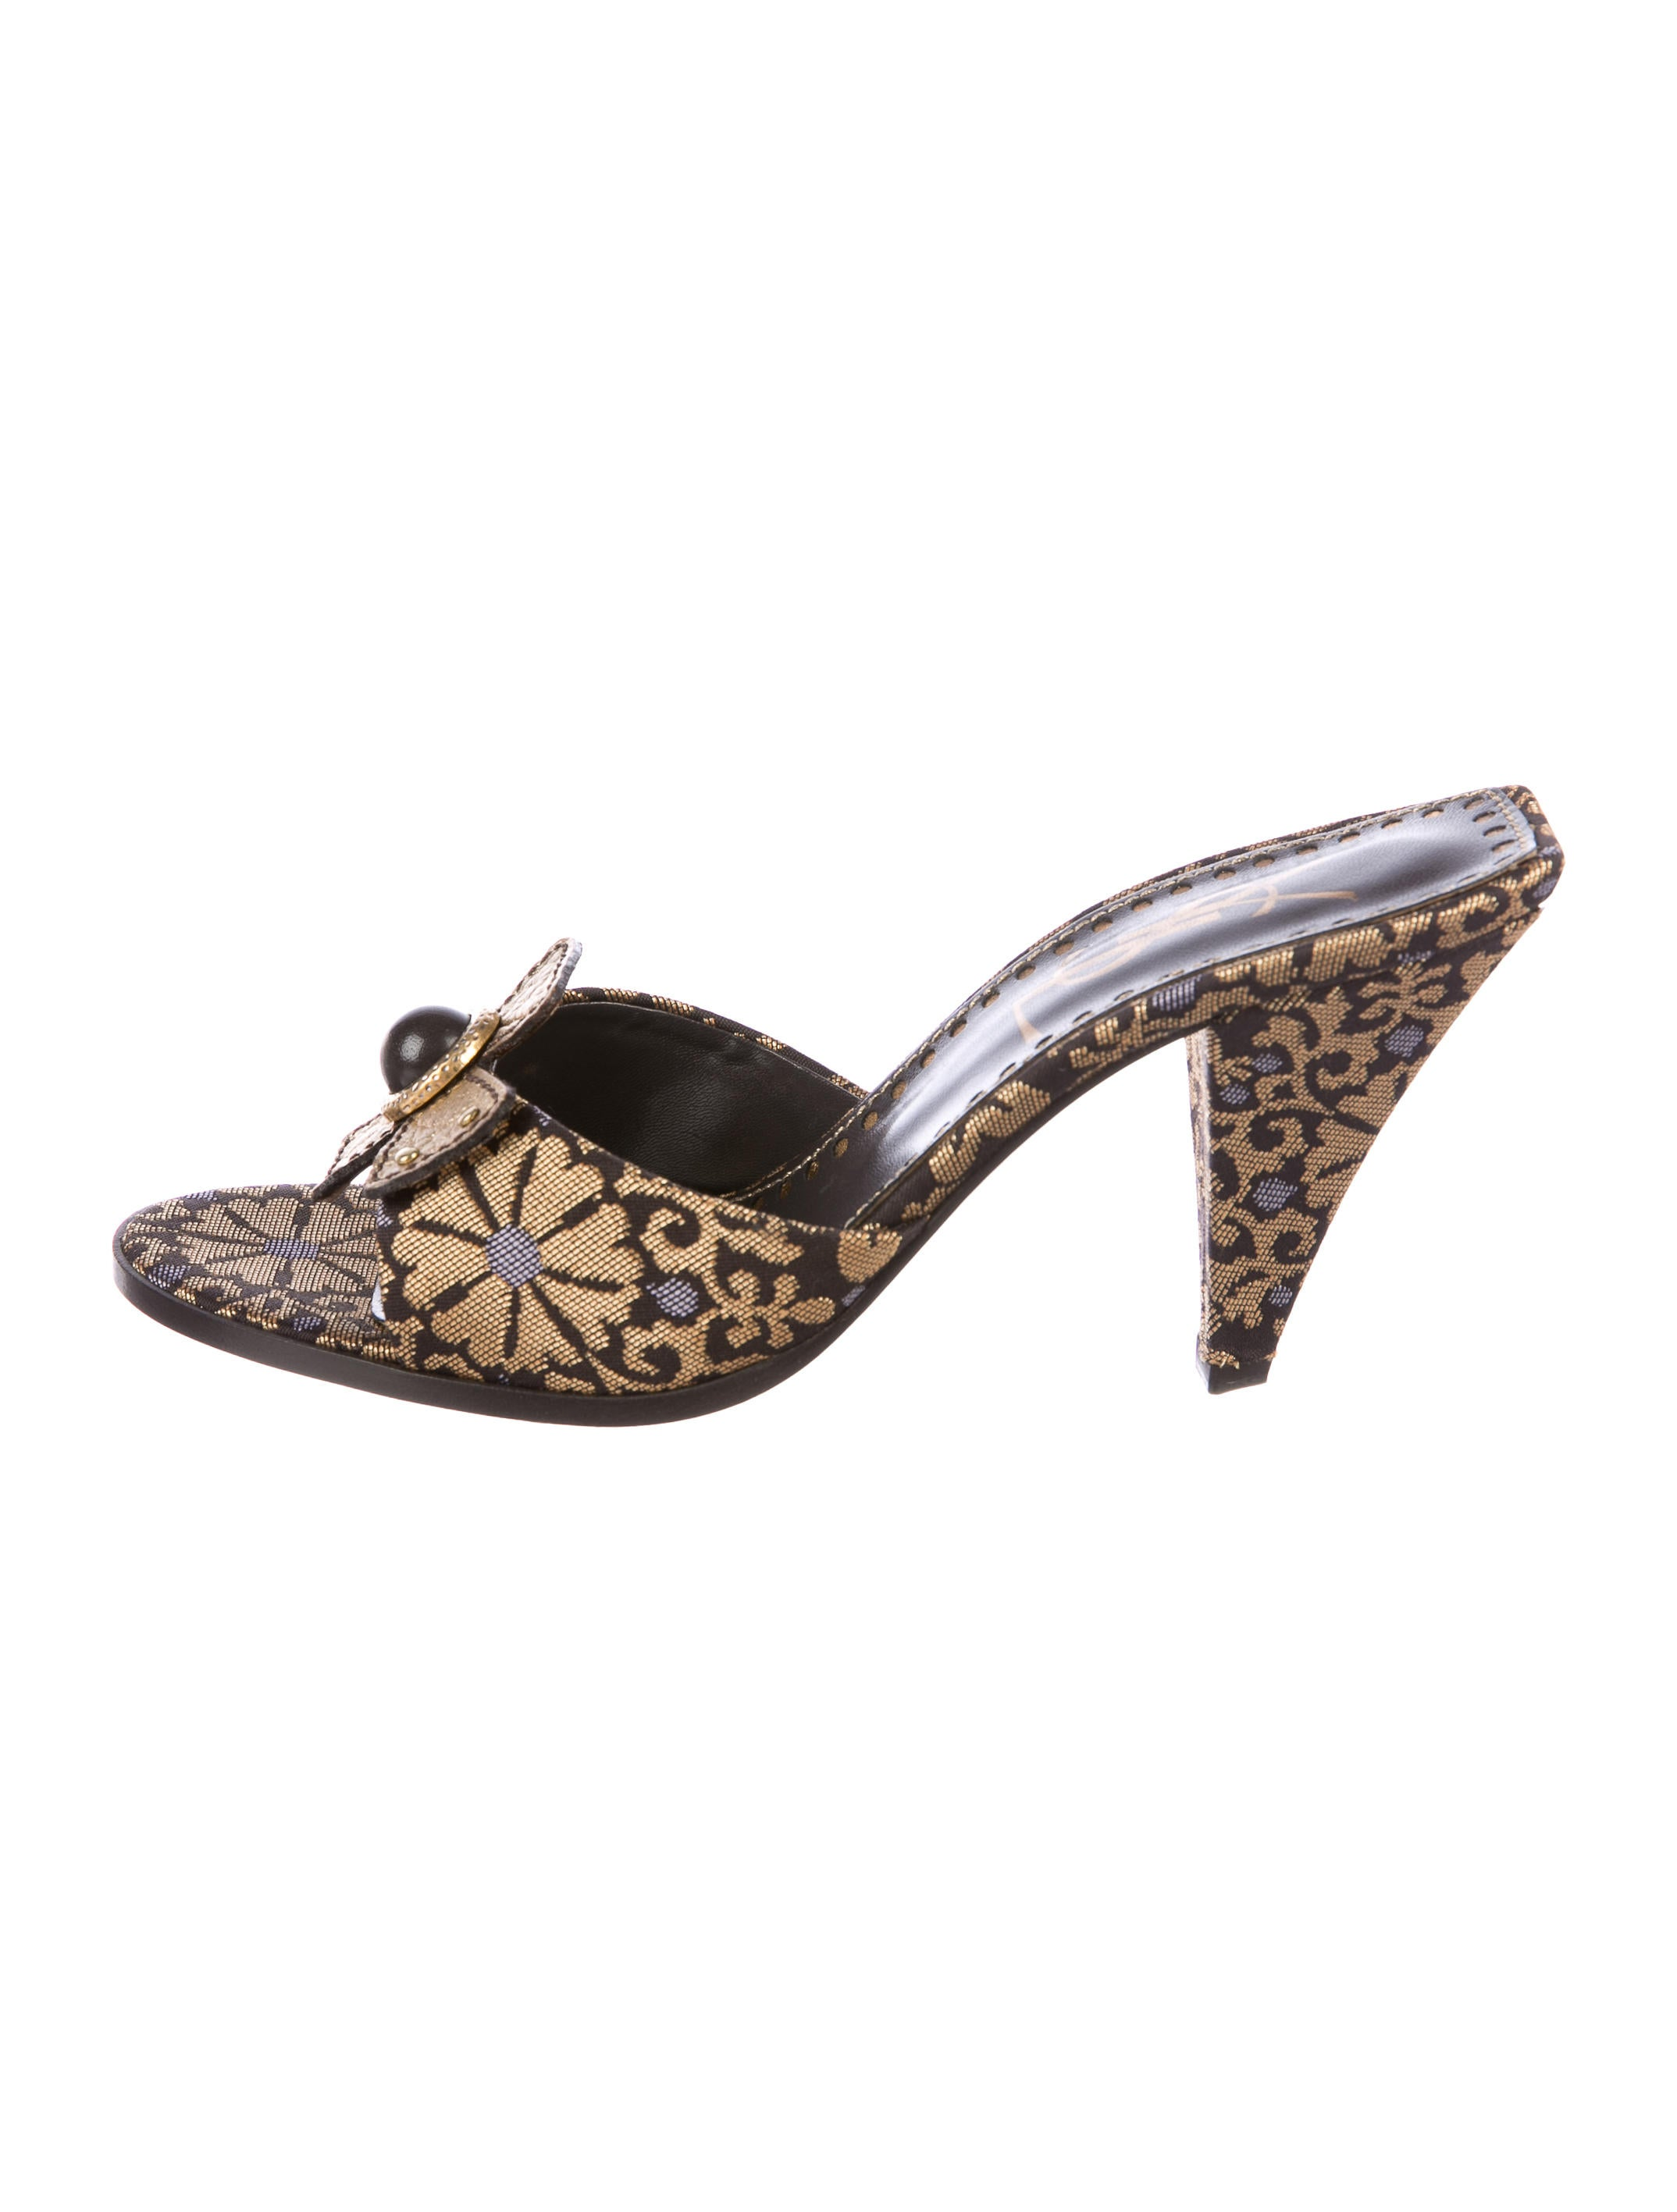 how much cheap online Yves Saint Laurent Embellished Brocade Slide Sandals cheap huge surprise discount comfortable outlet 100% authentic eJhjY